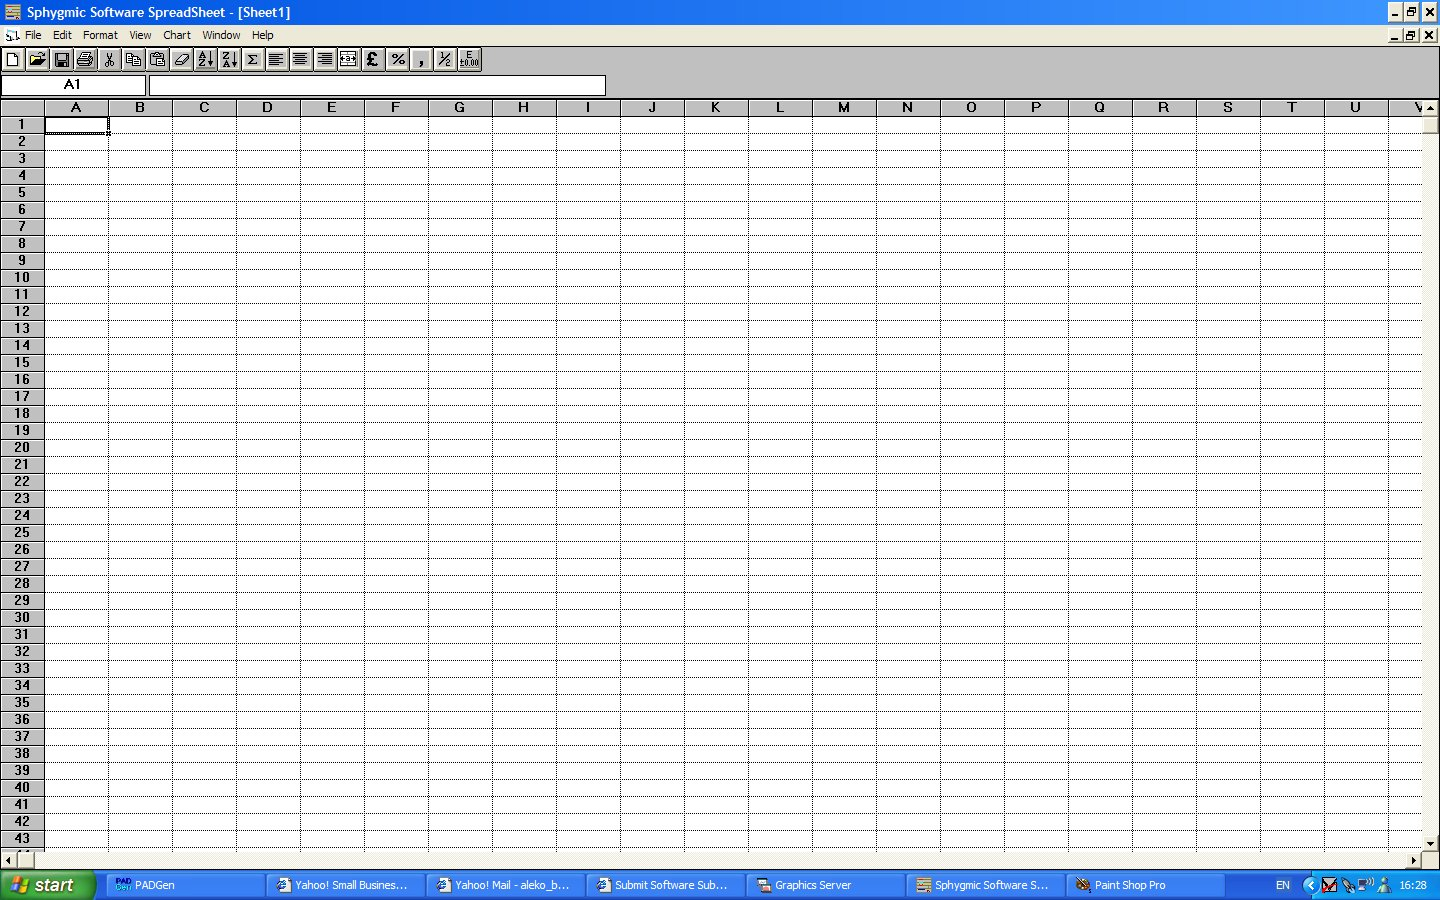 Download Free Spreadsheet Software For Windows 7